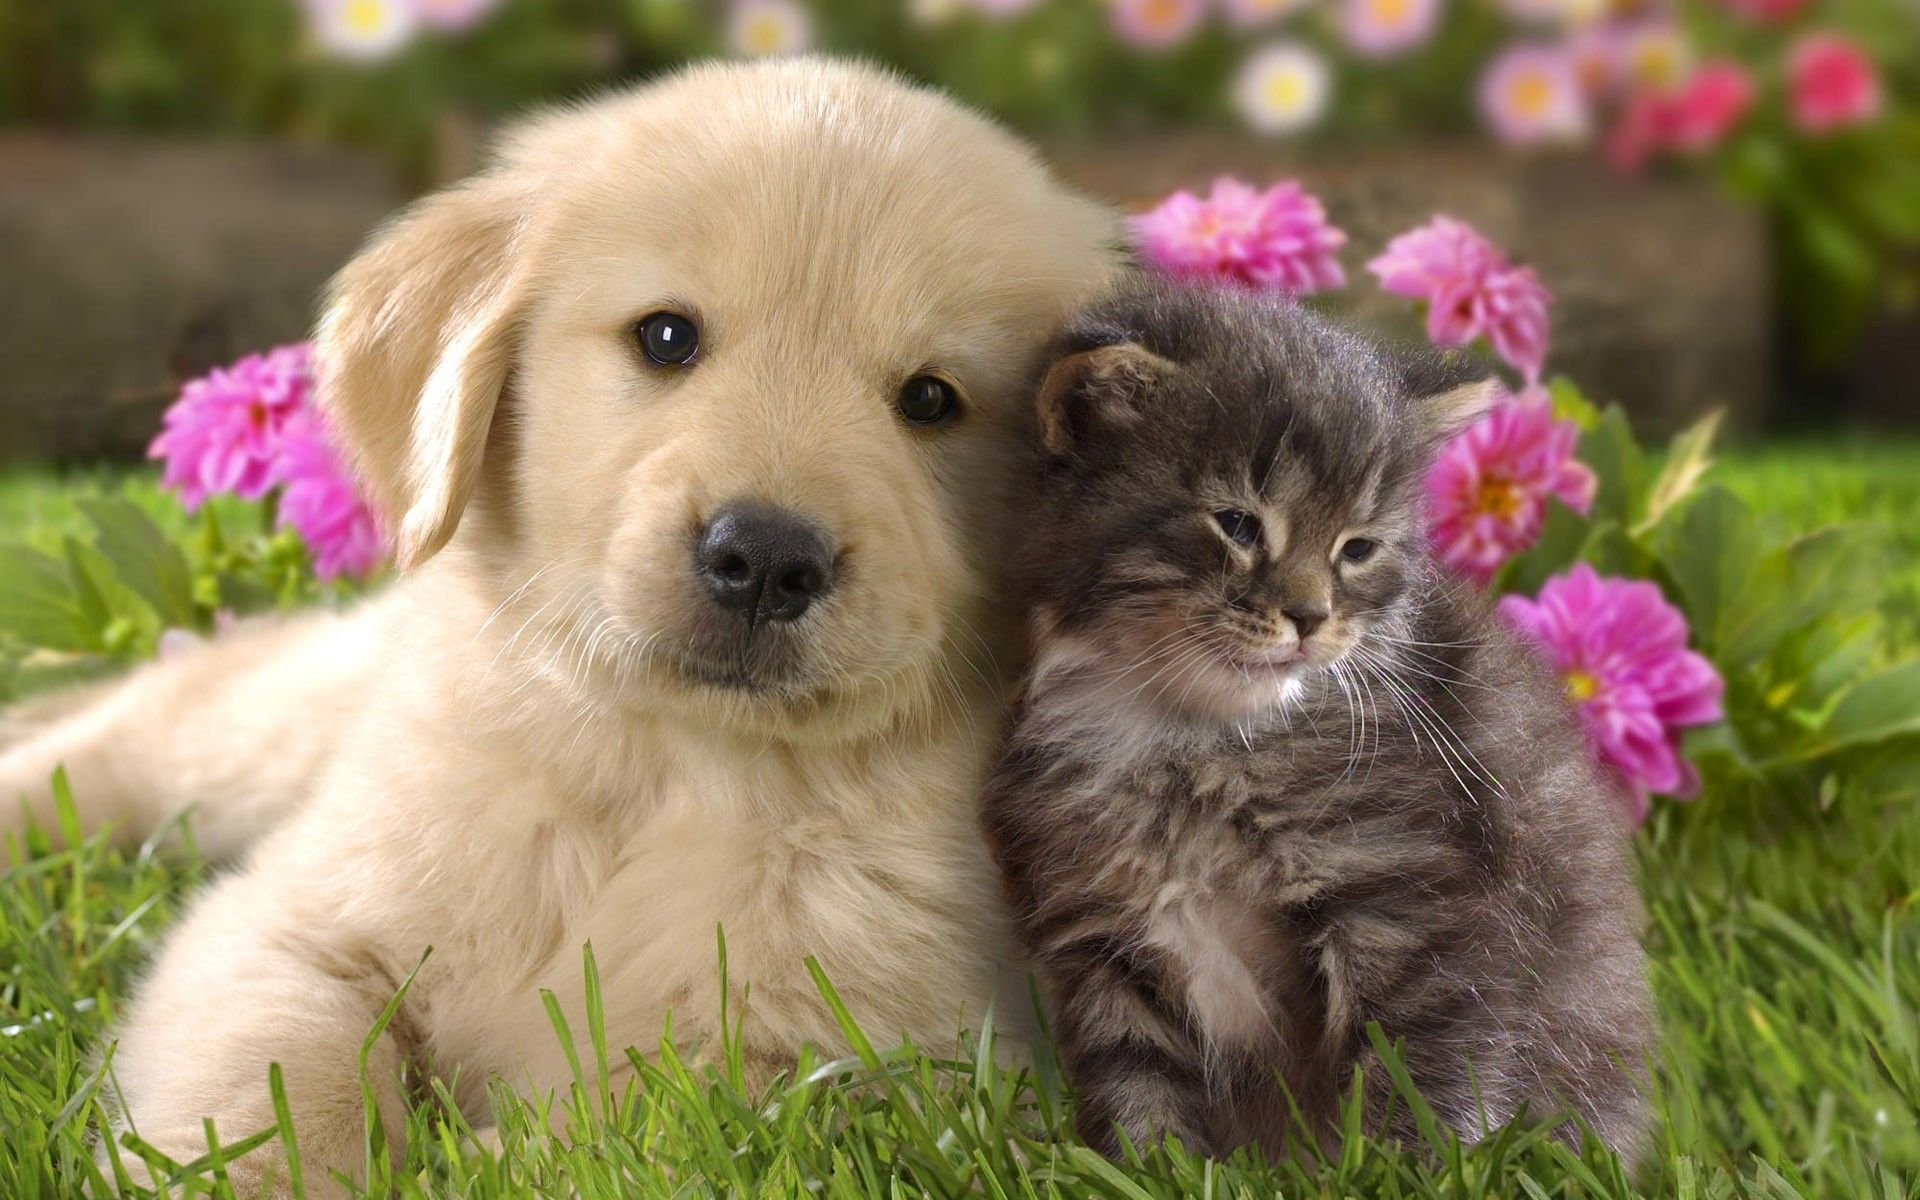 Cute Dog And Cat Wallpaper Cute Cats And Dogs Cat Wallpaper